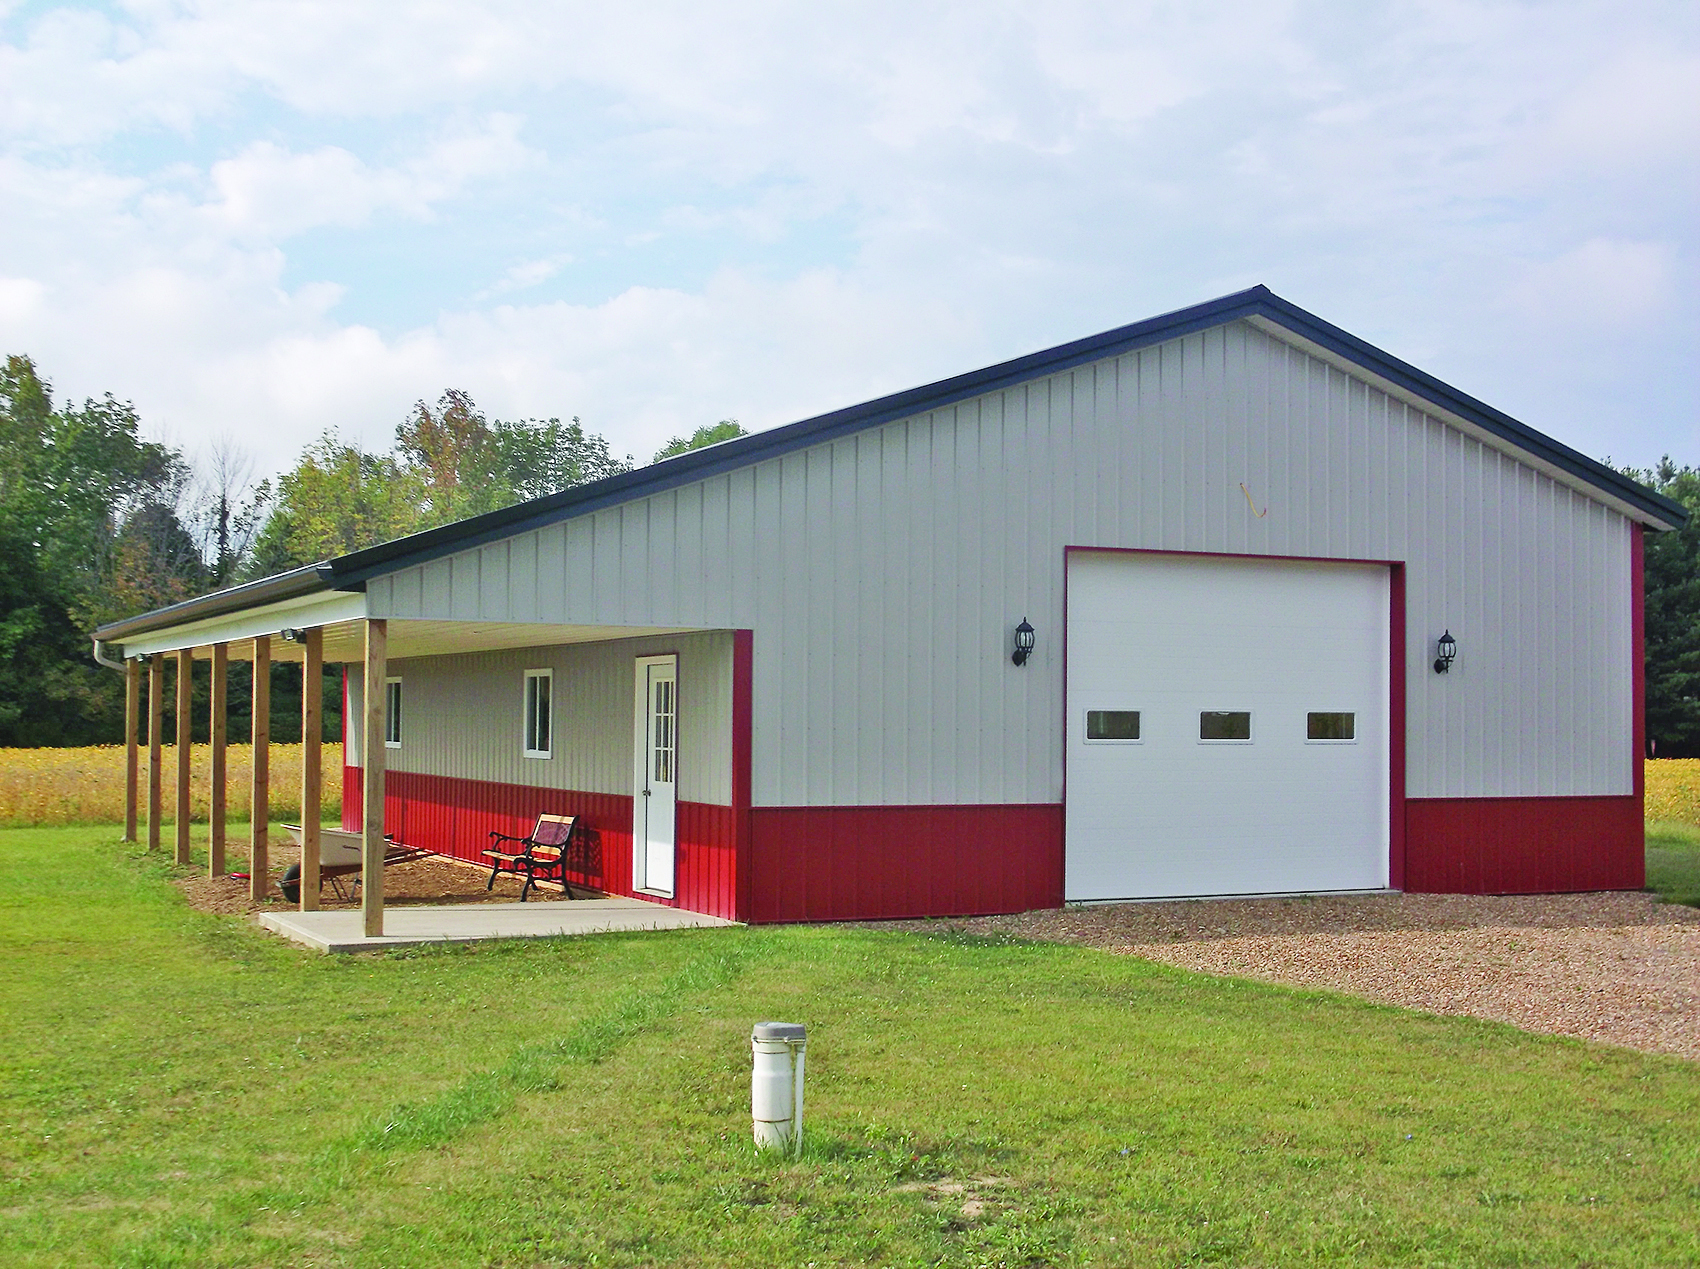 Metal Garage Pole Barn With Lean-To